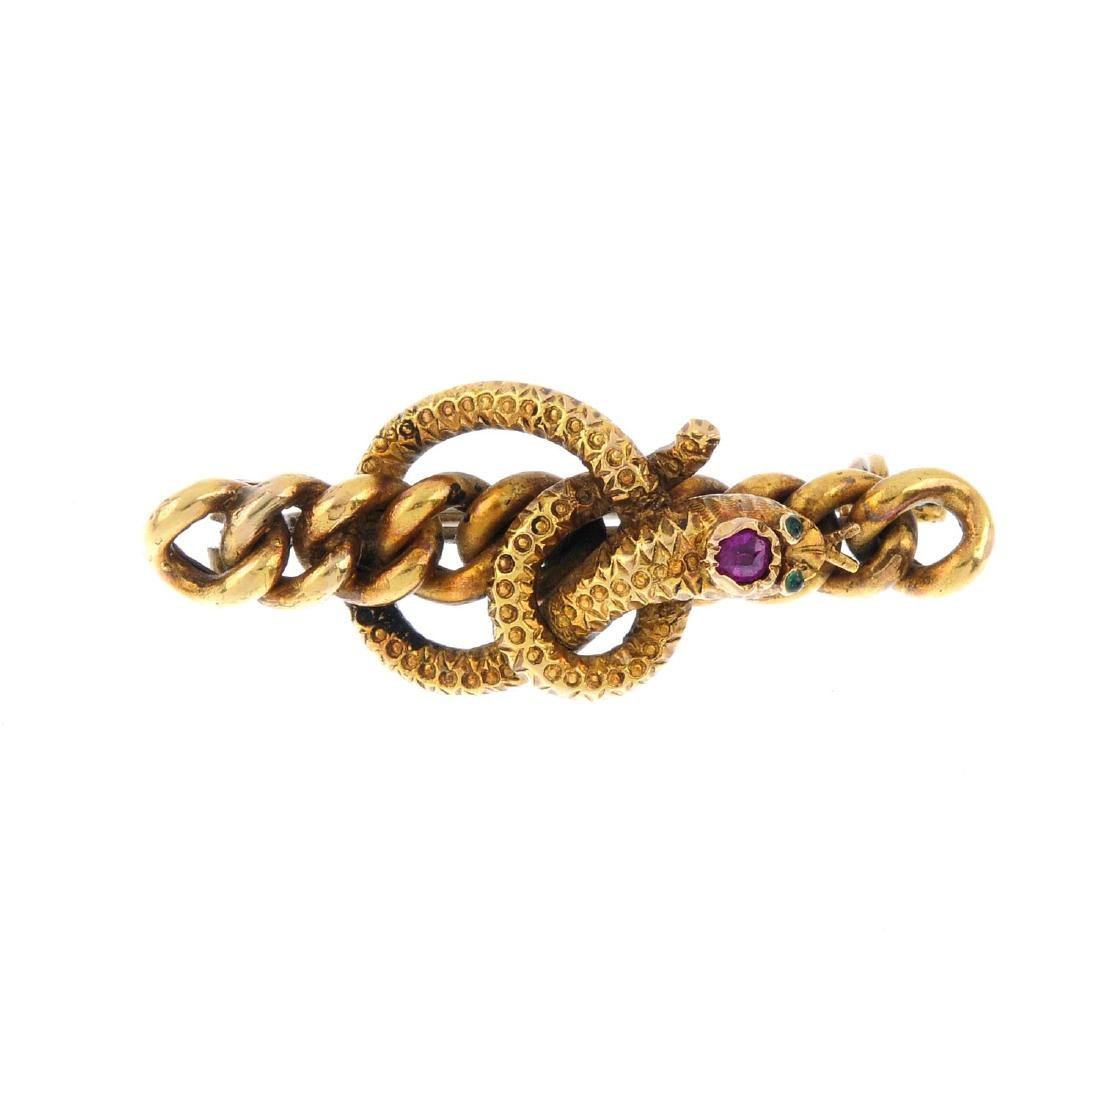 A late Victorian gem-set snake brooch. Designed as a